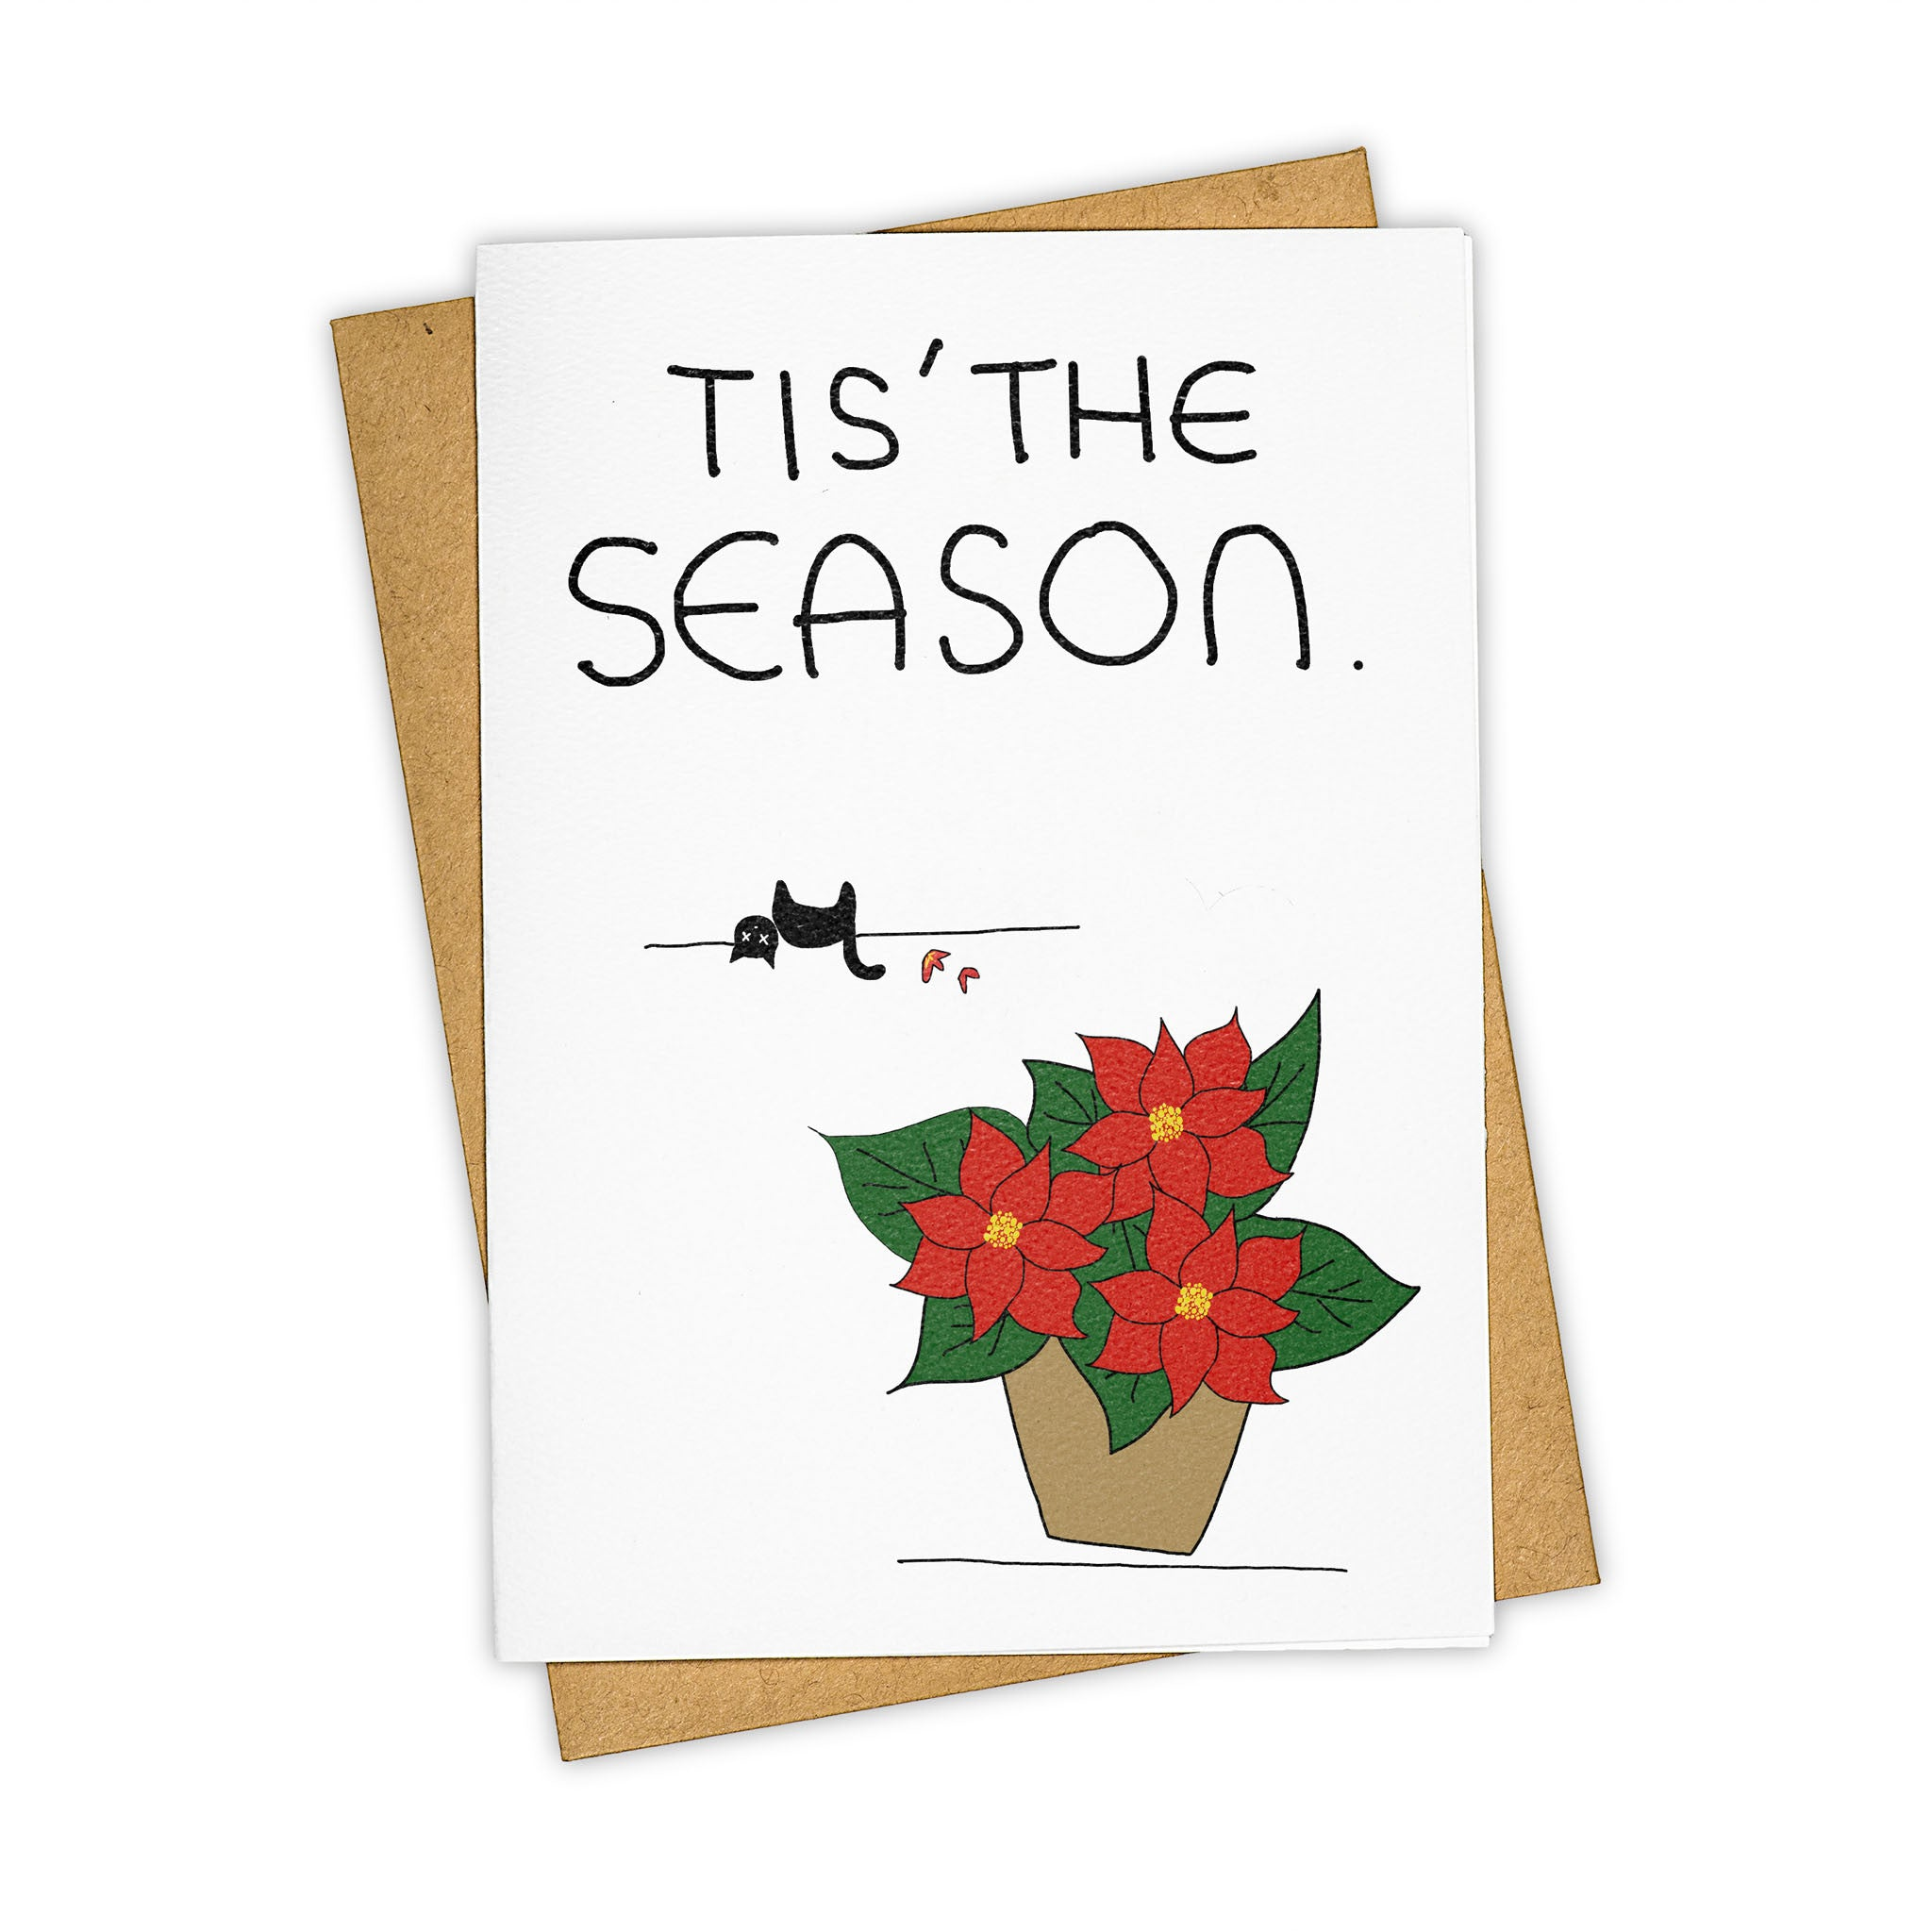 TAY HAM Poinsettia Poison Greeting Card Christmas Quirky